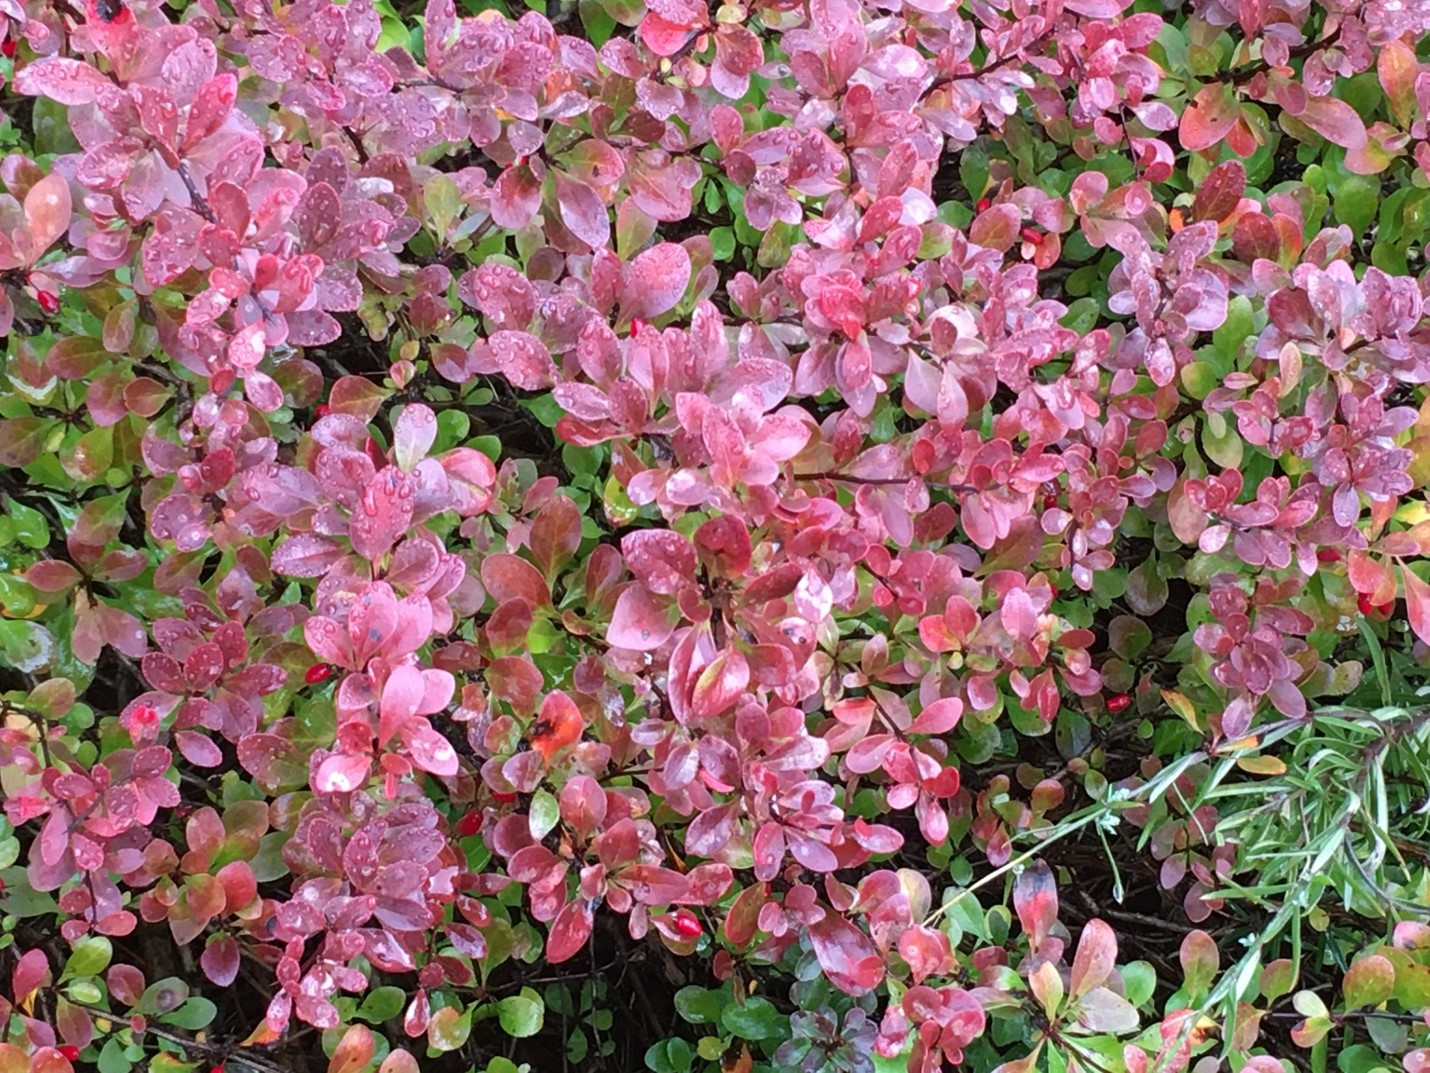 Close-up photo of Japanese Barberry